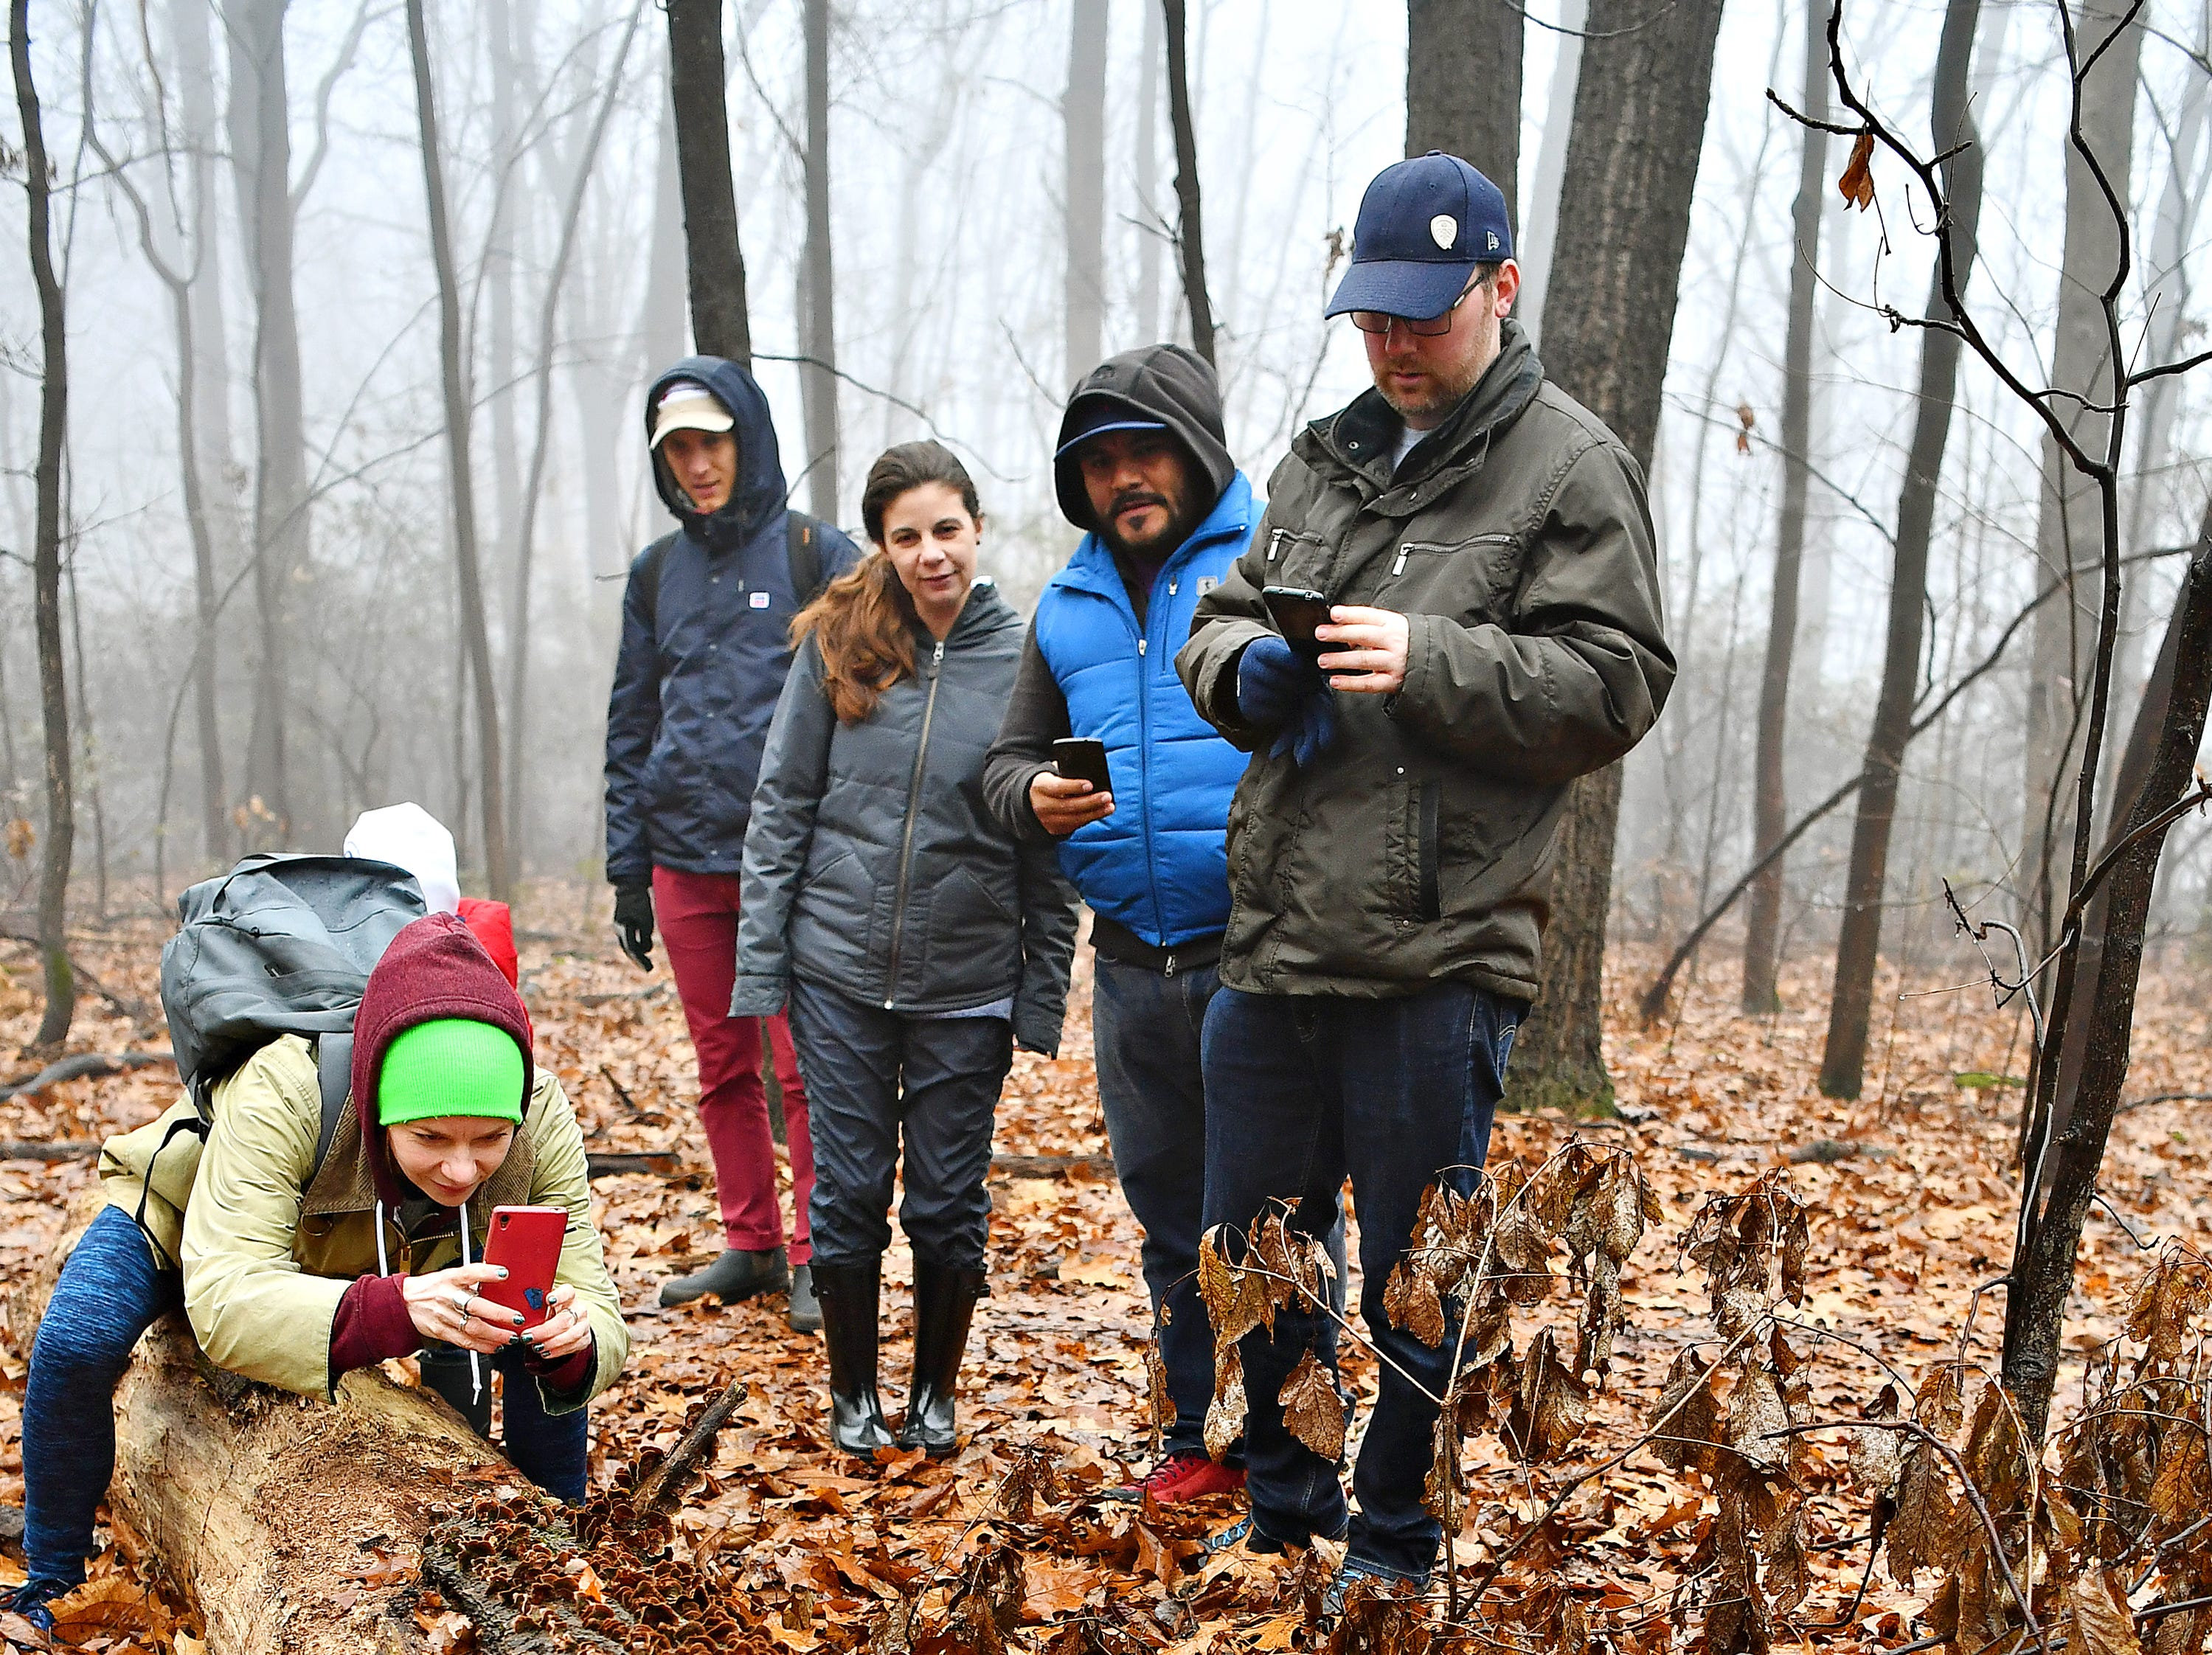 From left, Melanie Butler, and Josh Katz, both of Lancaster, Tiffany Butler and Manny Hernandez, both of Yucatan, Mexico, and Joel Butler, of Victoria, Canada, look on at a mushroom-covered tree trunk as York County Parks Naturalist Kelsey Frey leads a Marshmallow Hike at Rocky Ridge Park in Springettsbury Township, Friday, Dec. 28, 2018. The family traveled from Lancaster for the hike while on holiday. Dawn J. Sagert photo